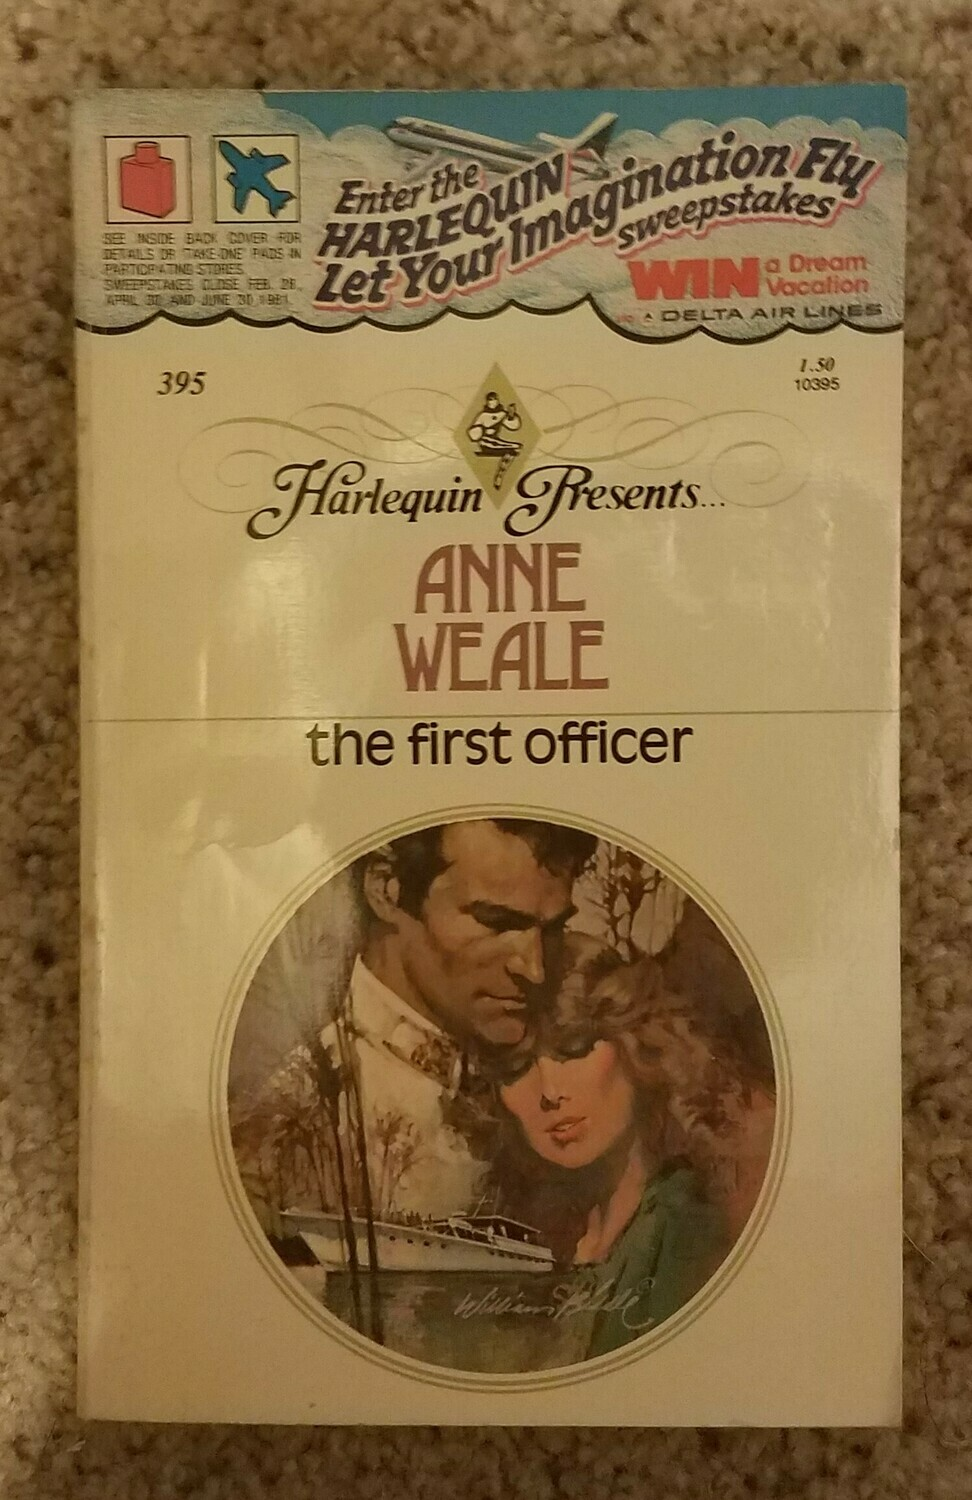 The First Officer by Anne Weale